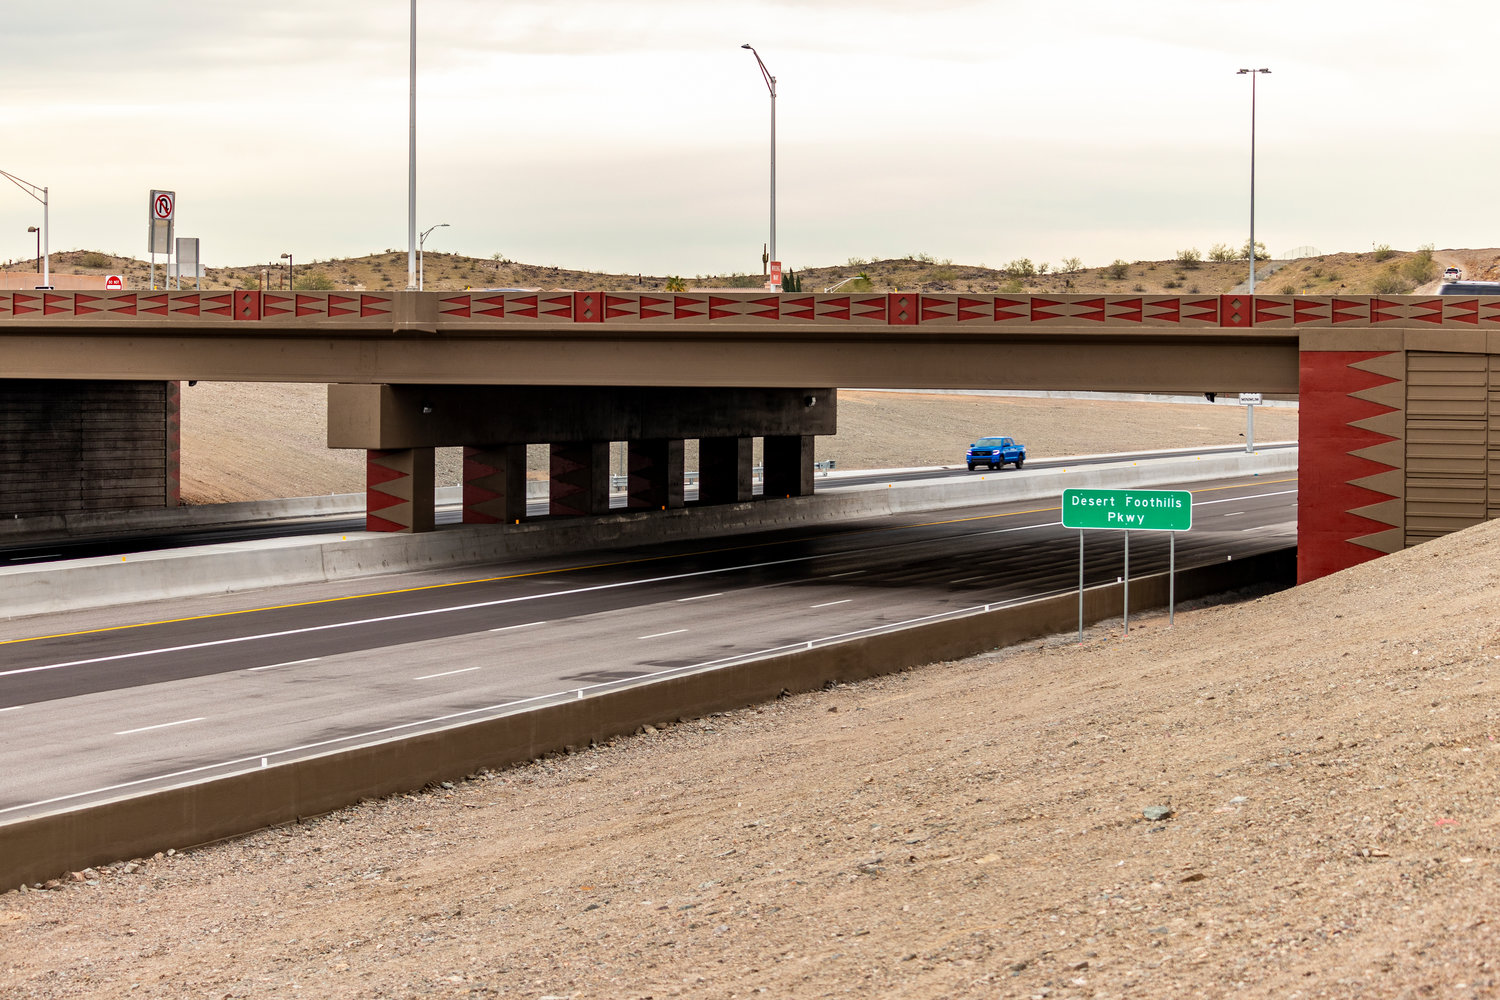 Loop 202 South Mountain Freeway opens to traffic | Your Valley Map Interstate Scottsdale on interstate 421 map, i-10 map, interstate 4 map, interstate 25 map, lincoln way map, interstate 8 map, interstate 81 map, texas map, interstate 75 map, interstate 5 map, interstate 27 map, interstate 20 map, interstate i-10, interstate 70 map, i-70 colorado road map, interstate 80 map, highway 82 map, interstate 422 map,